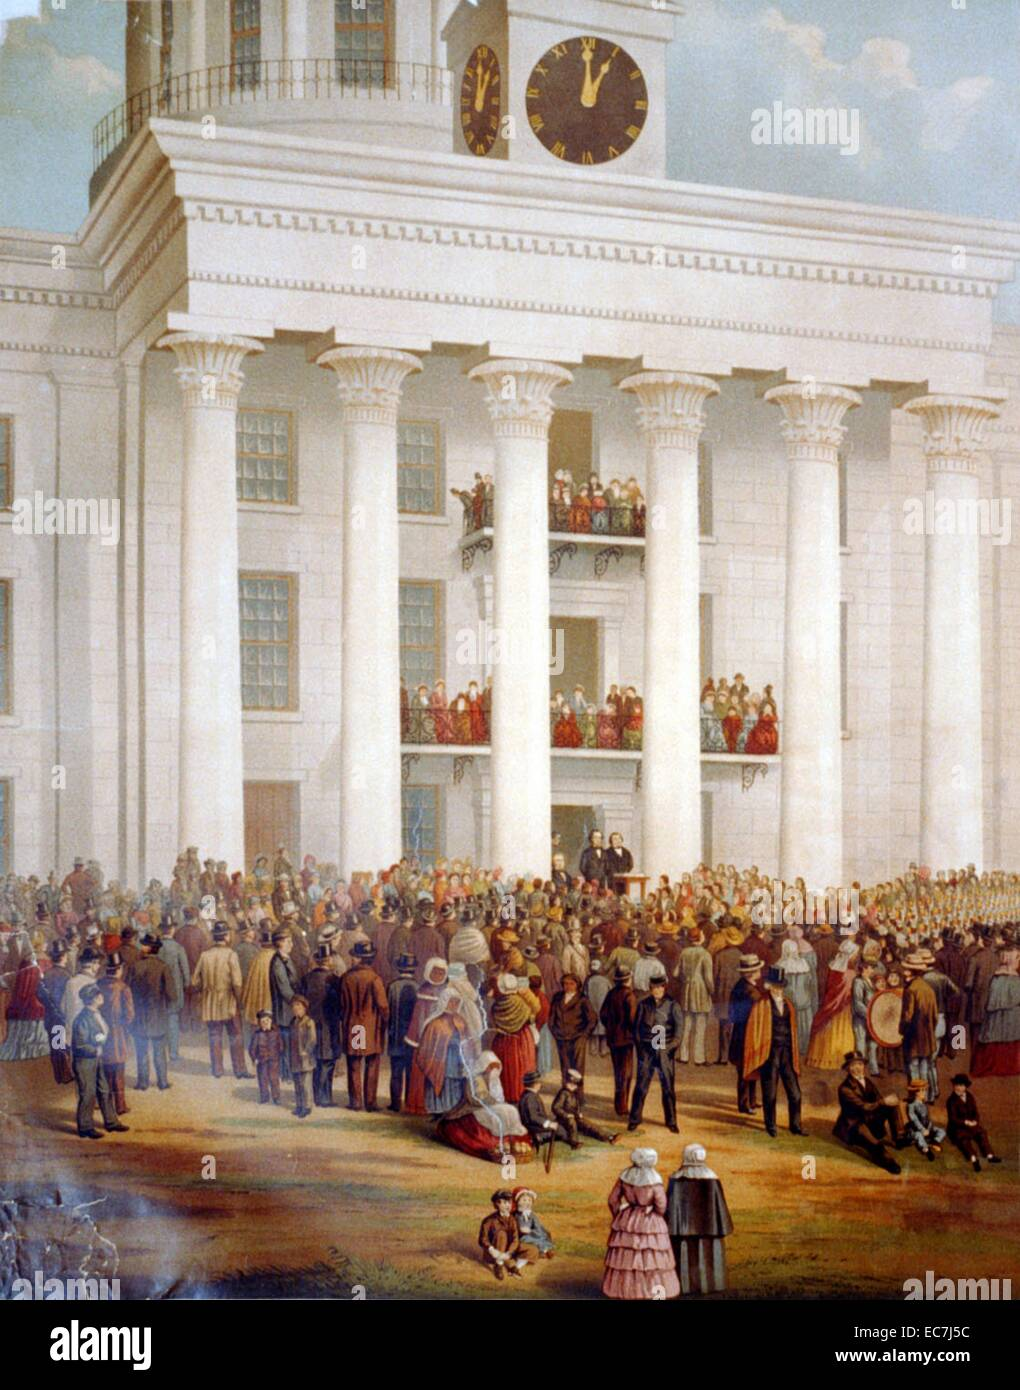 The starting point of the great war between the states. A crowd gathers in front of the capitol building at the - Stock Image